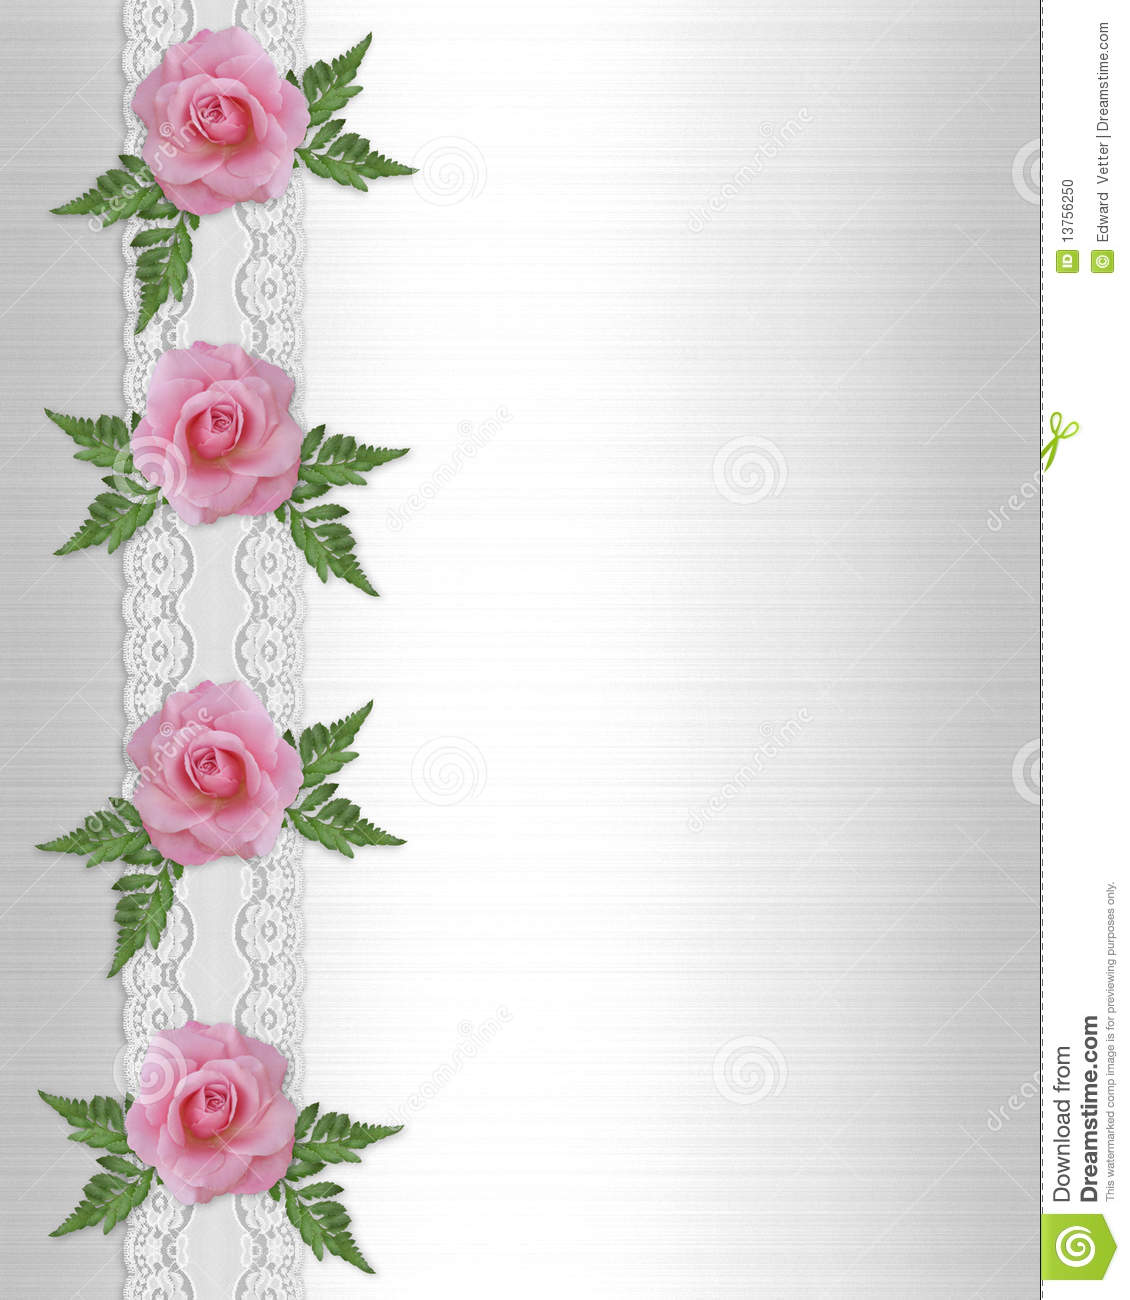 Pink roses and lace border